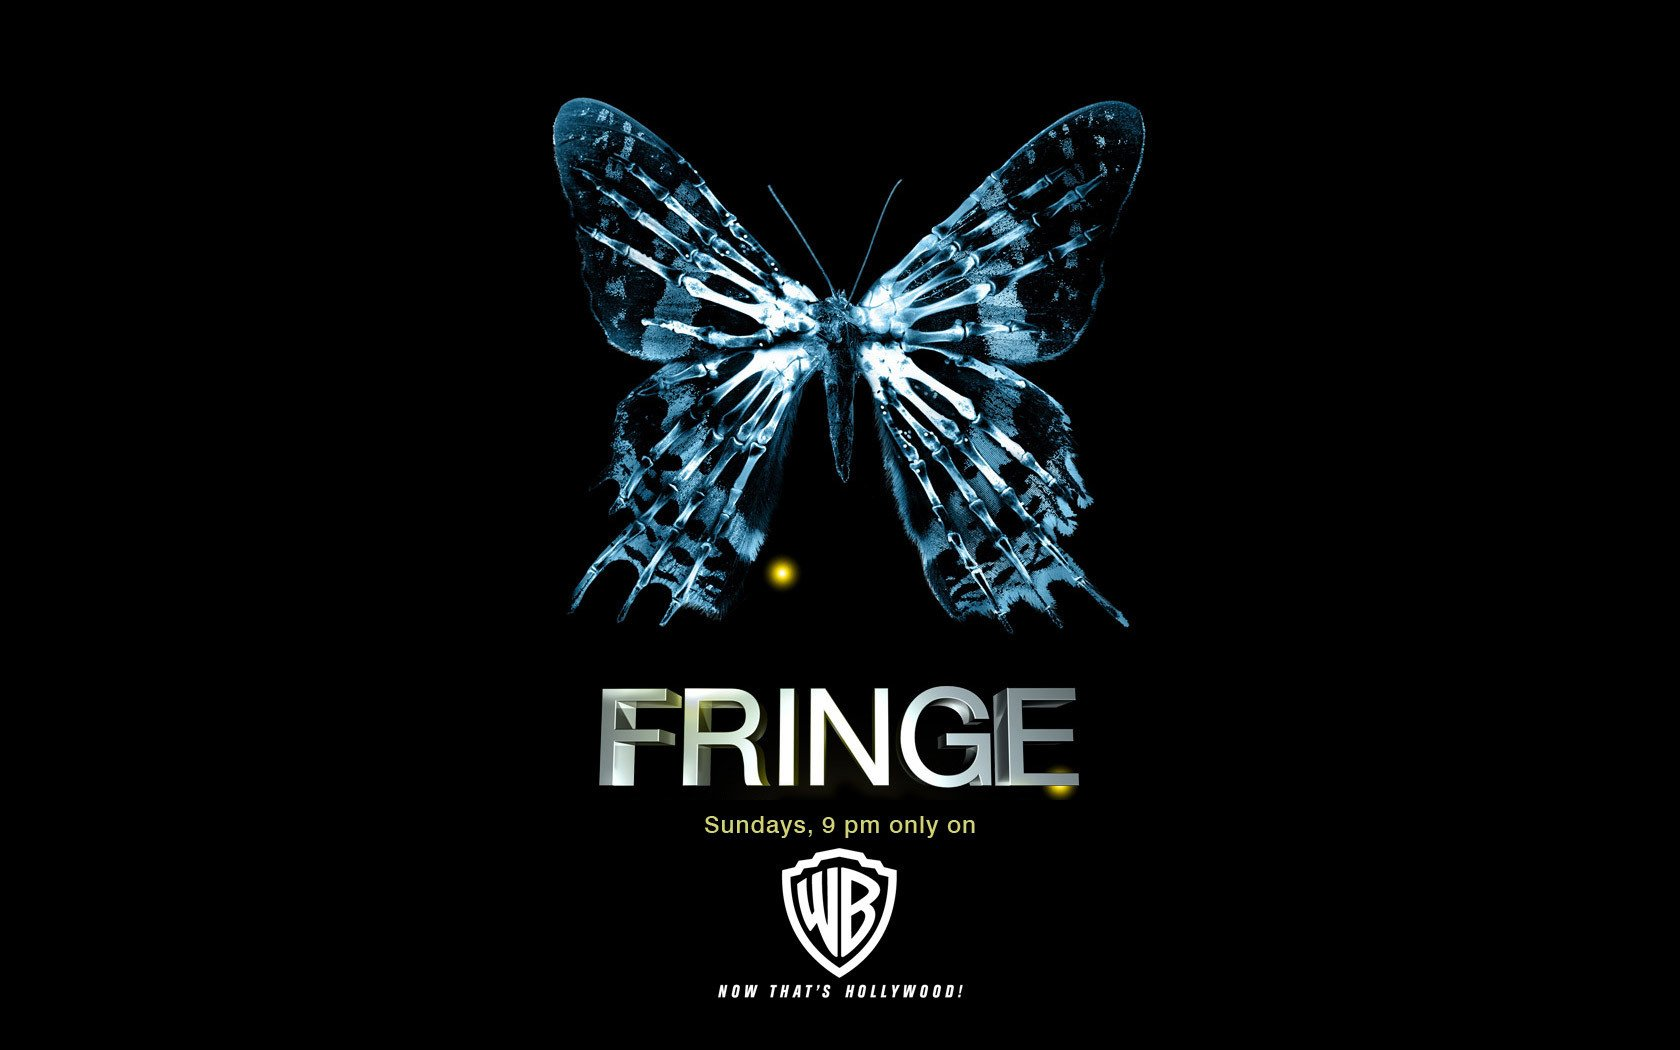 fringe frog tv series - photo #28